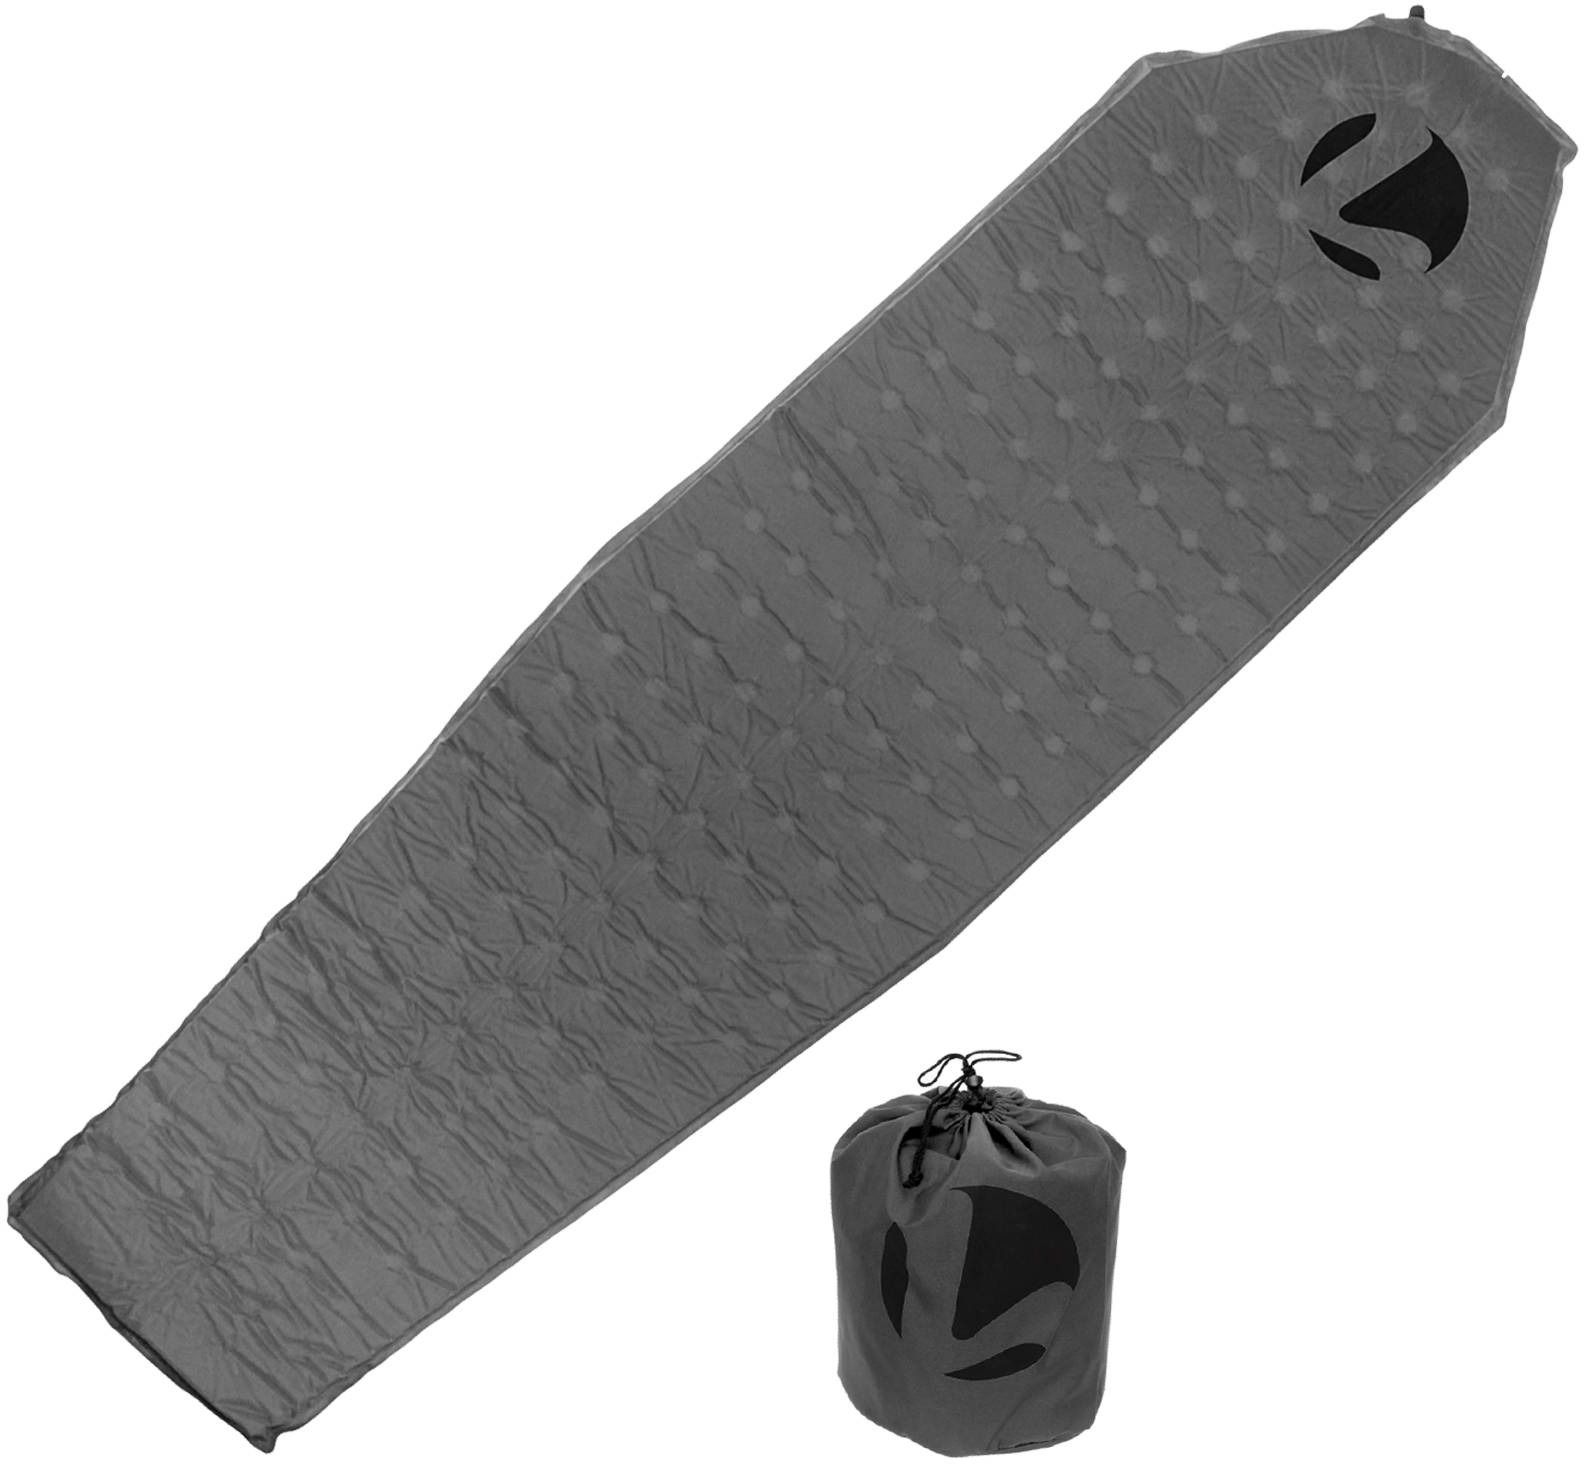 LISH Self Inflating Lightweight Sleeping Mat Pad for Camping, Hiking